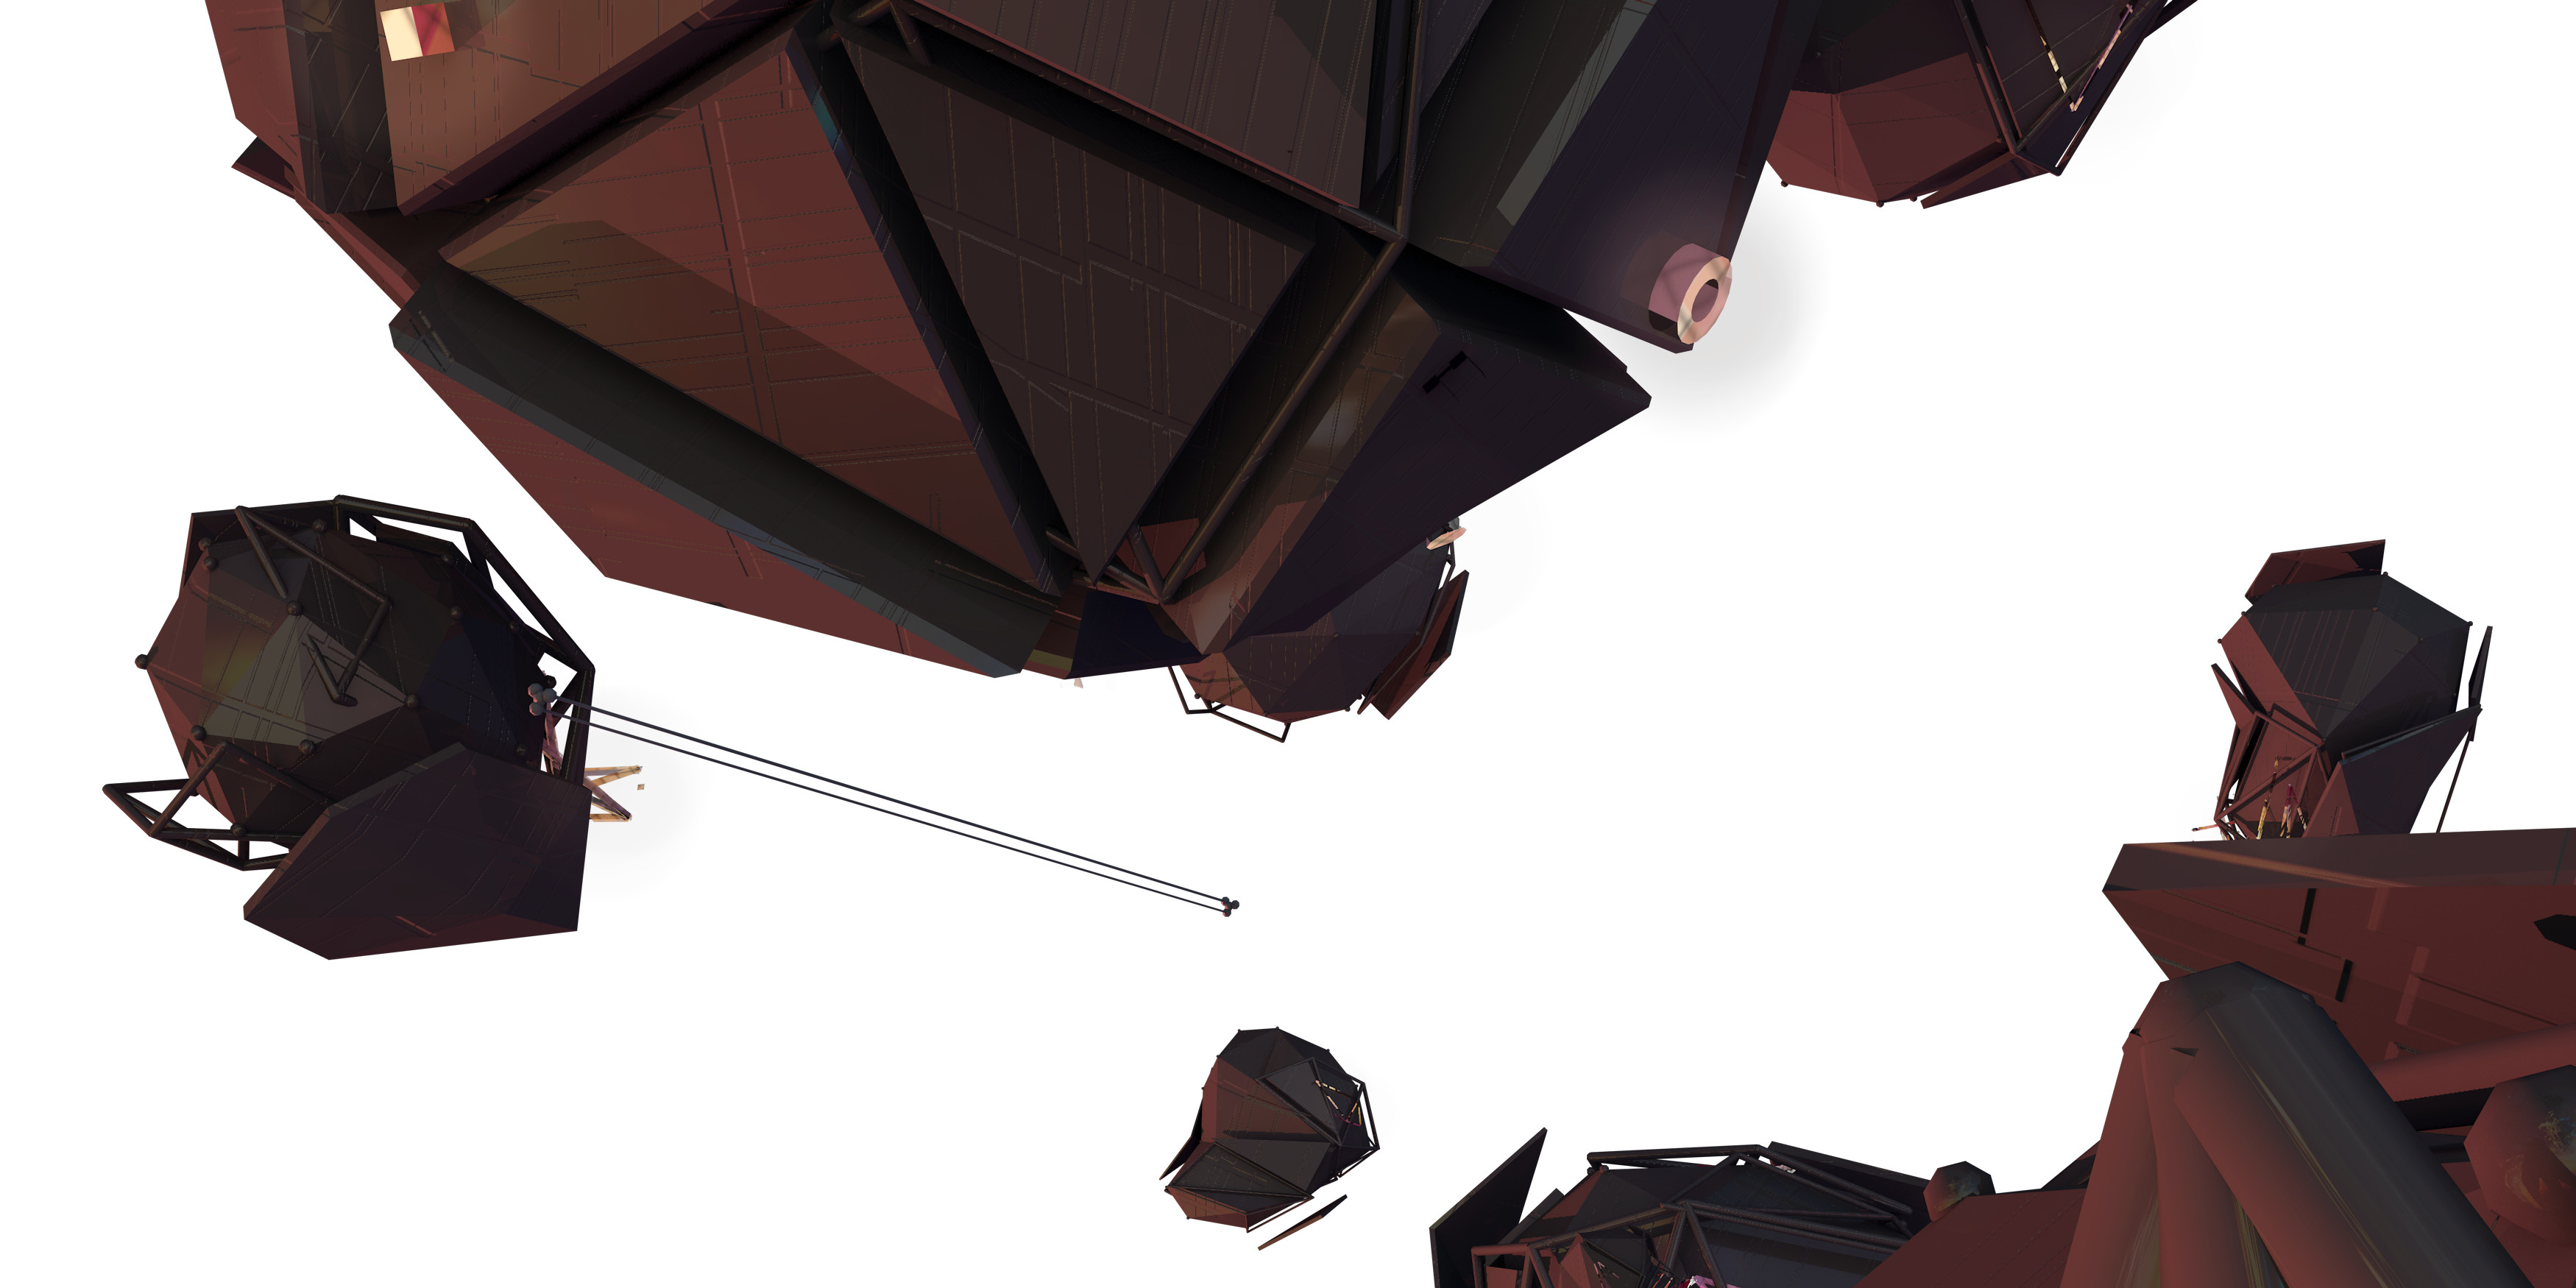 The 3D meteors made in c4d